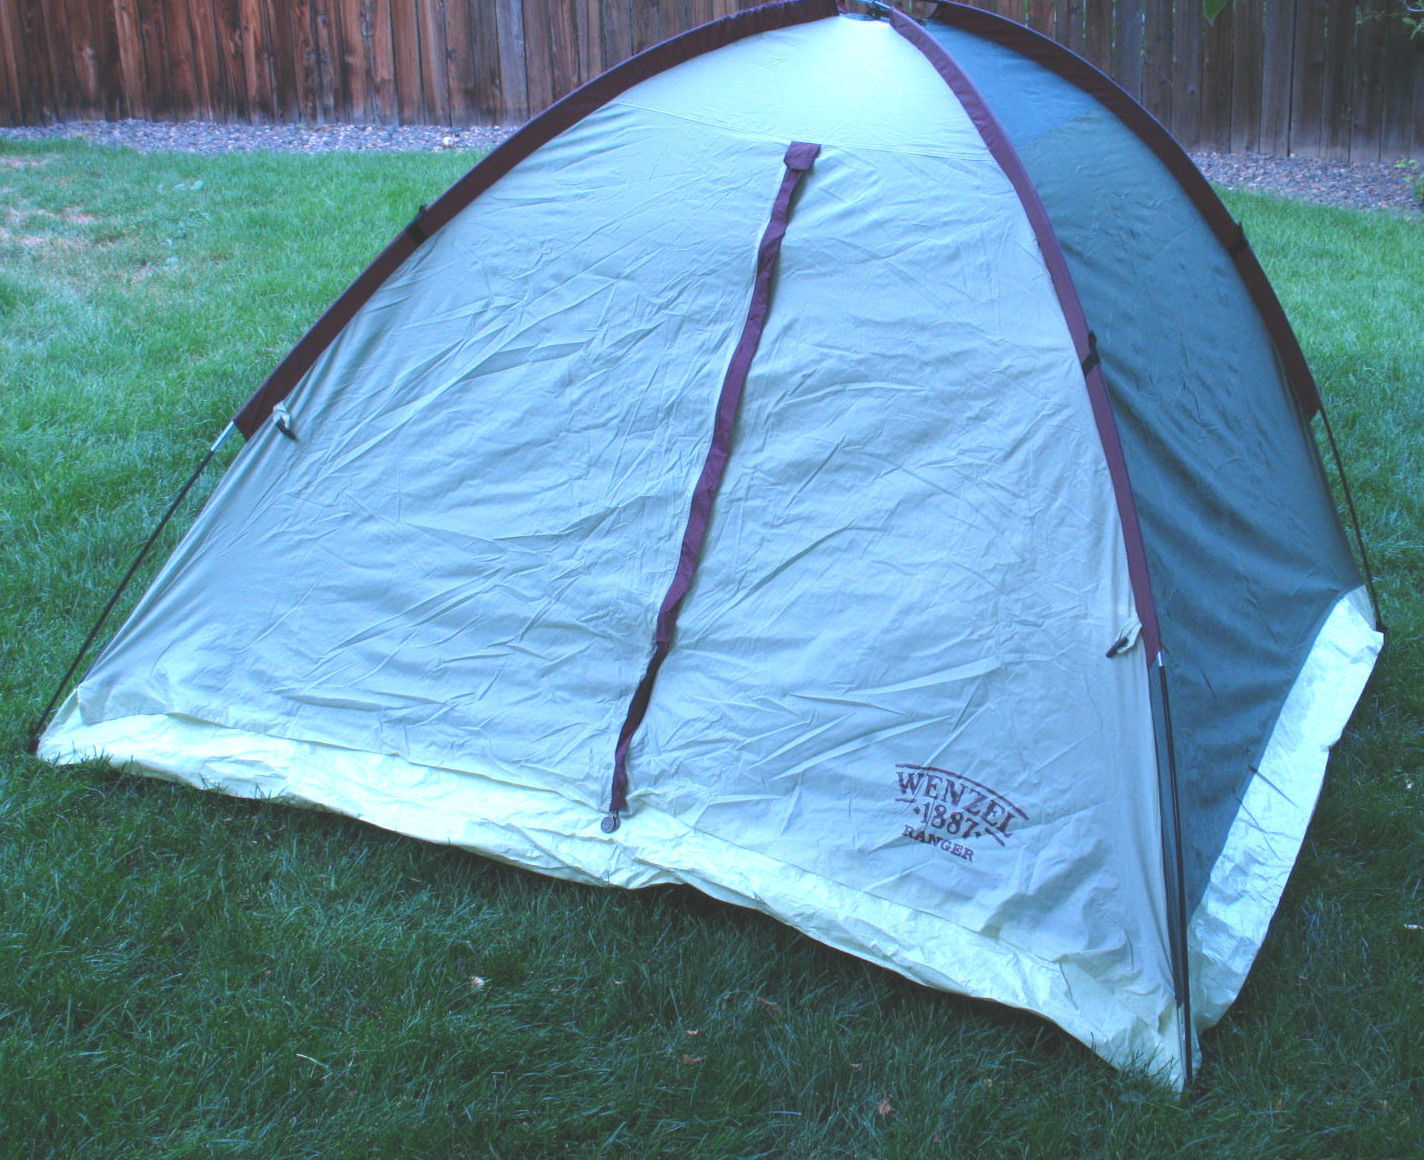 & Wenzel 2 Person Sport Tent Ranger and 50 similar items